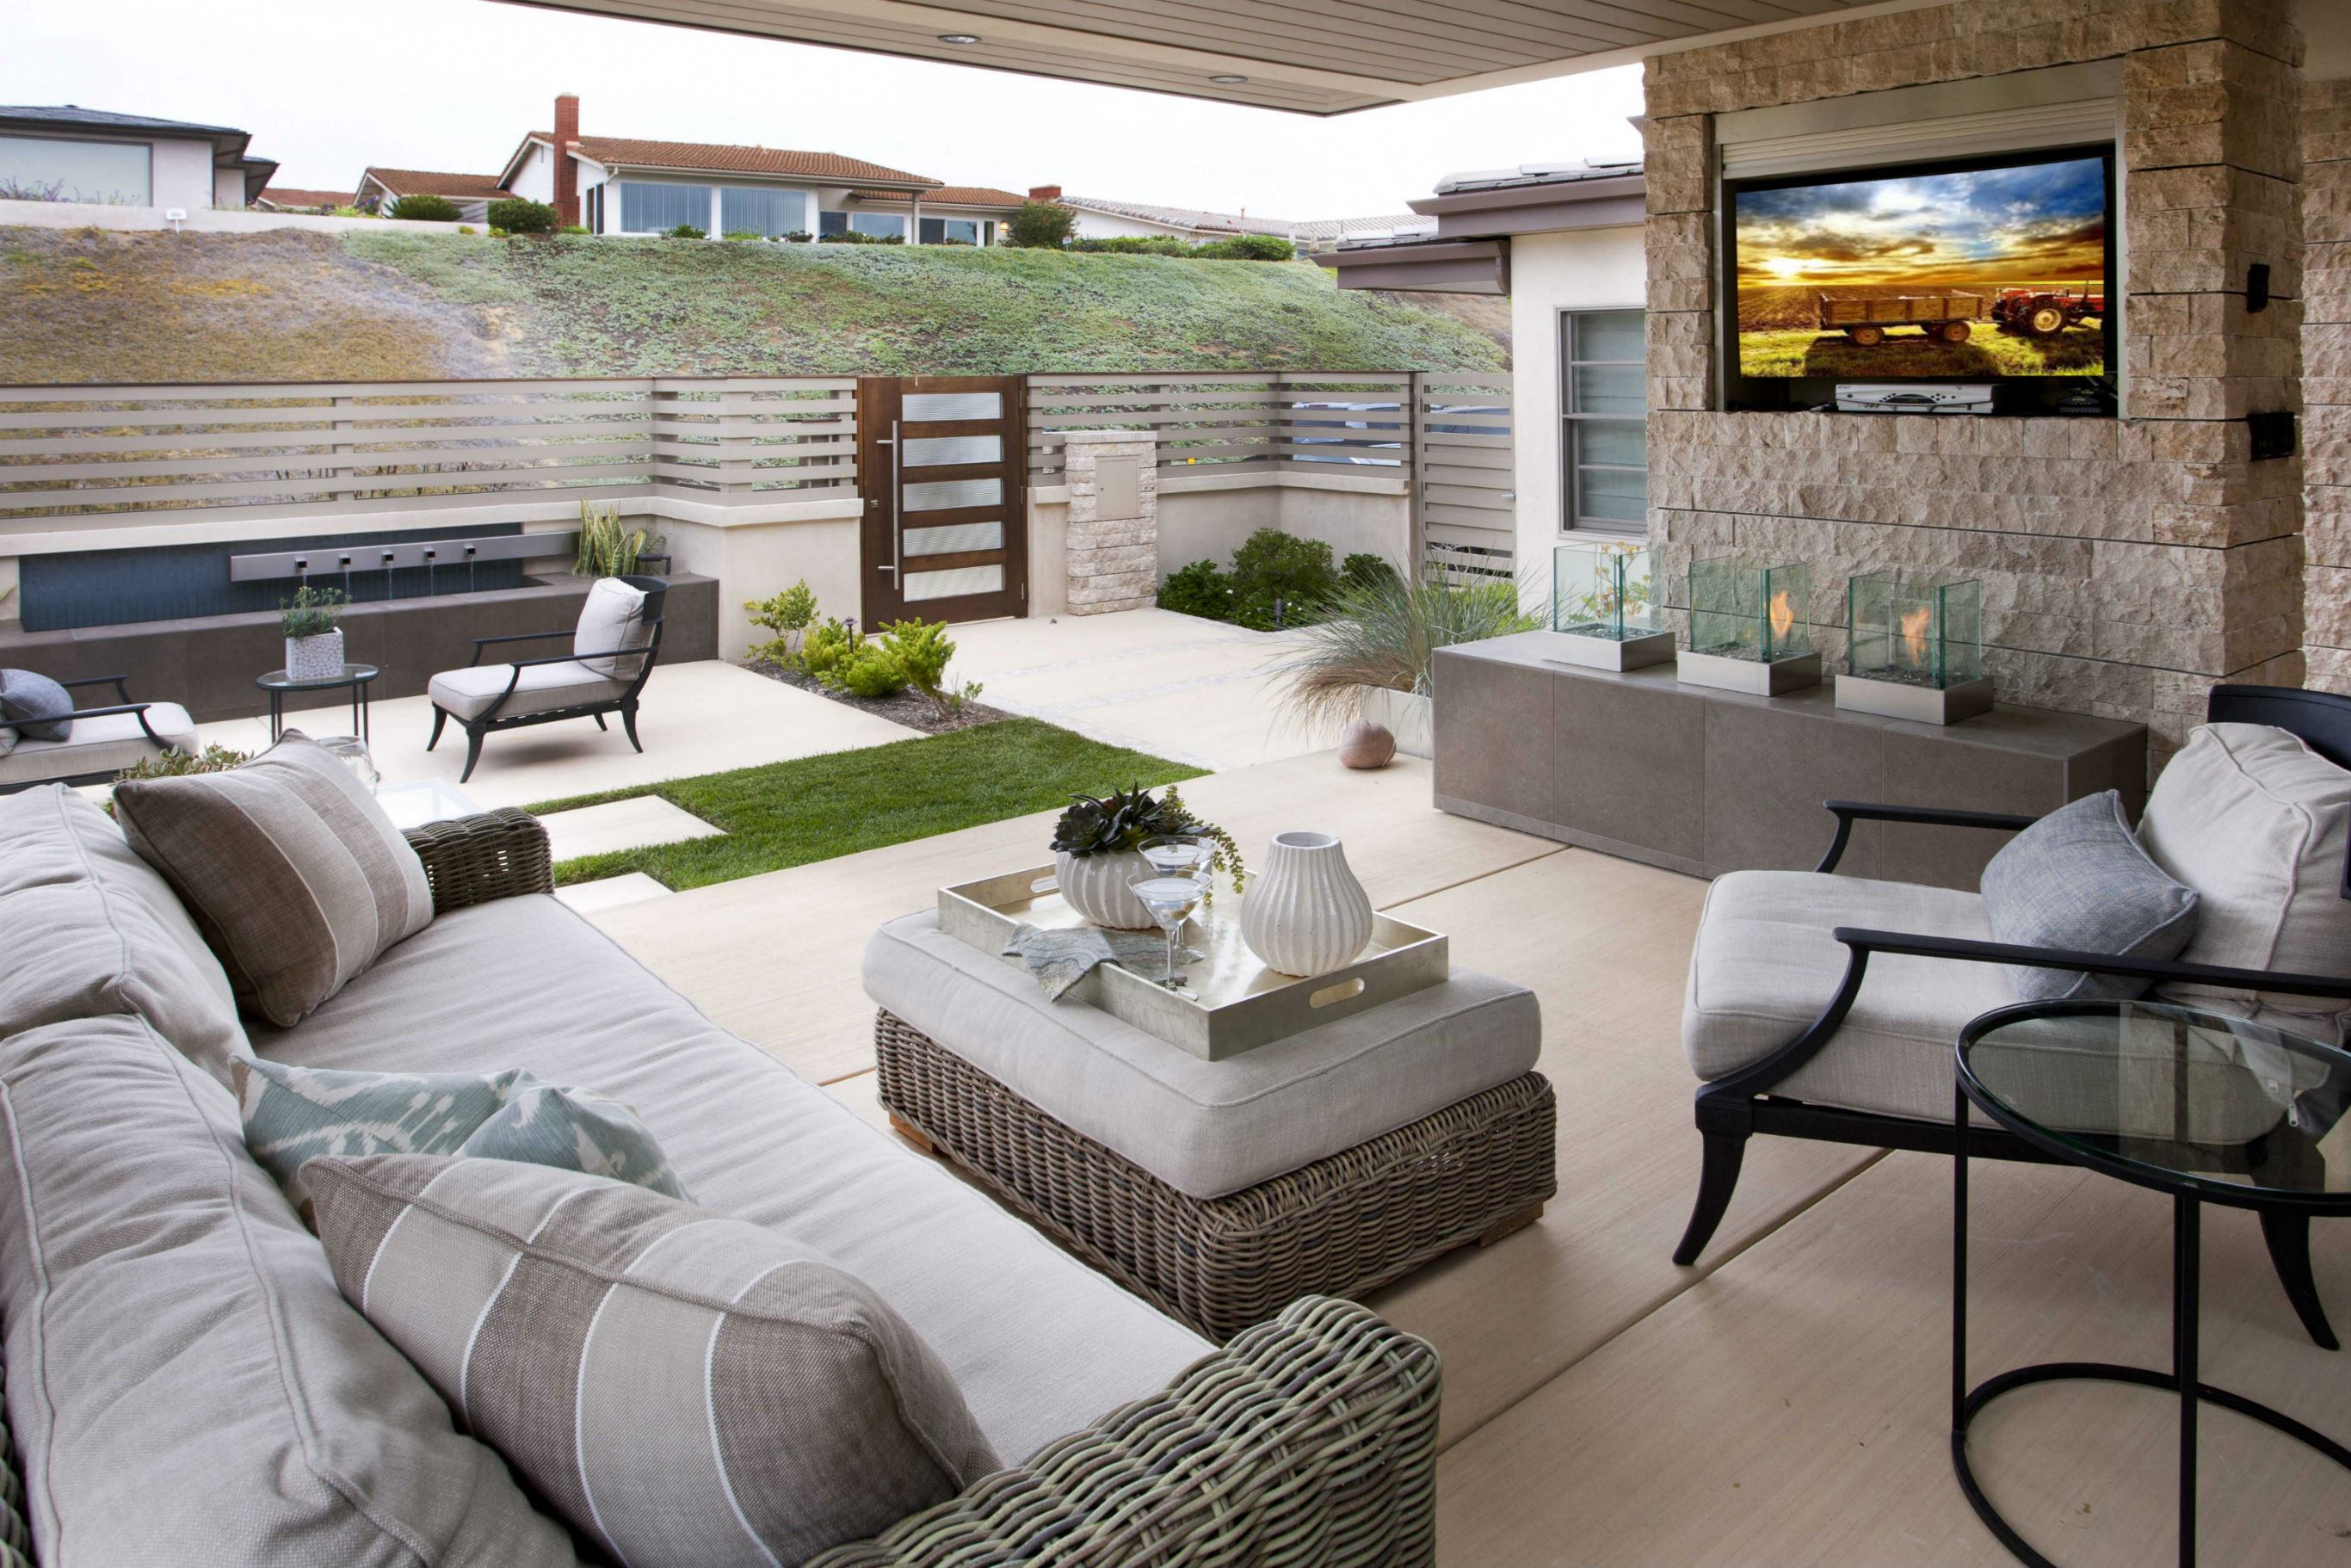 Backyard Spotlight: Sage Outdoor Designs| Pool & Spa News on Backyard Yard Design  id=74133